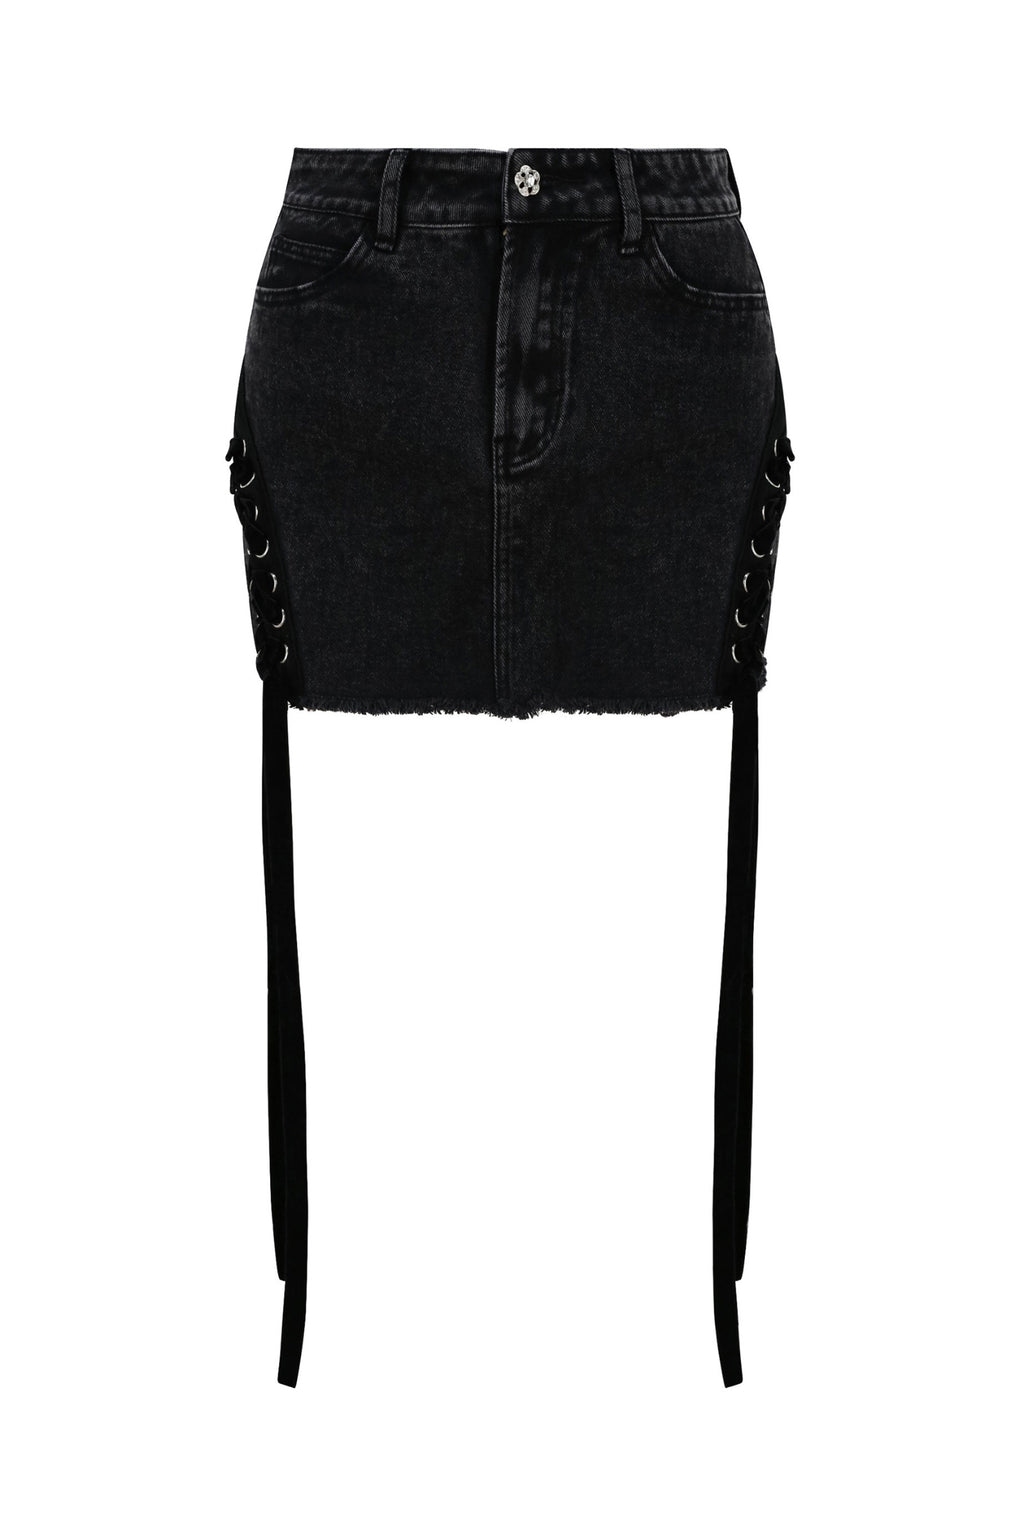 Black Side Lace-up Denim MIni Skirt